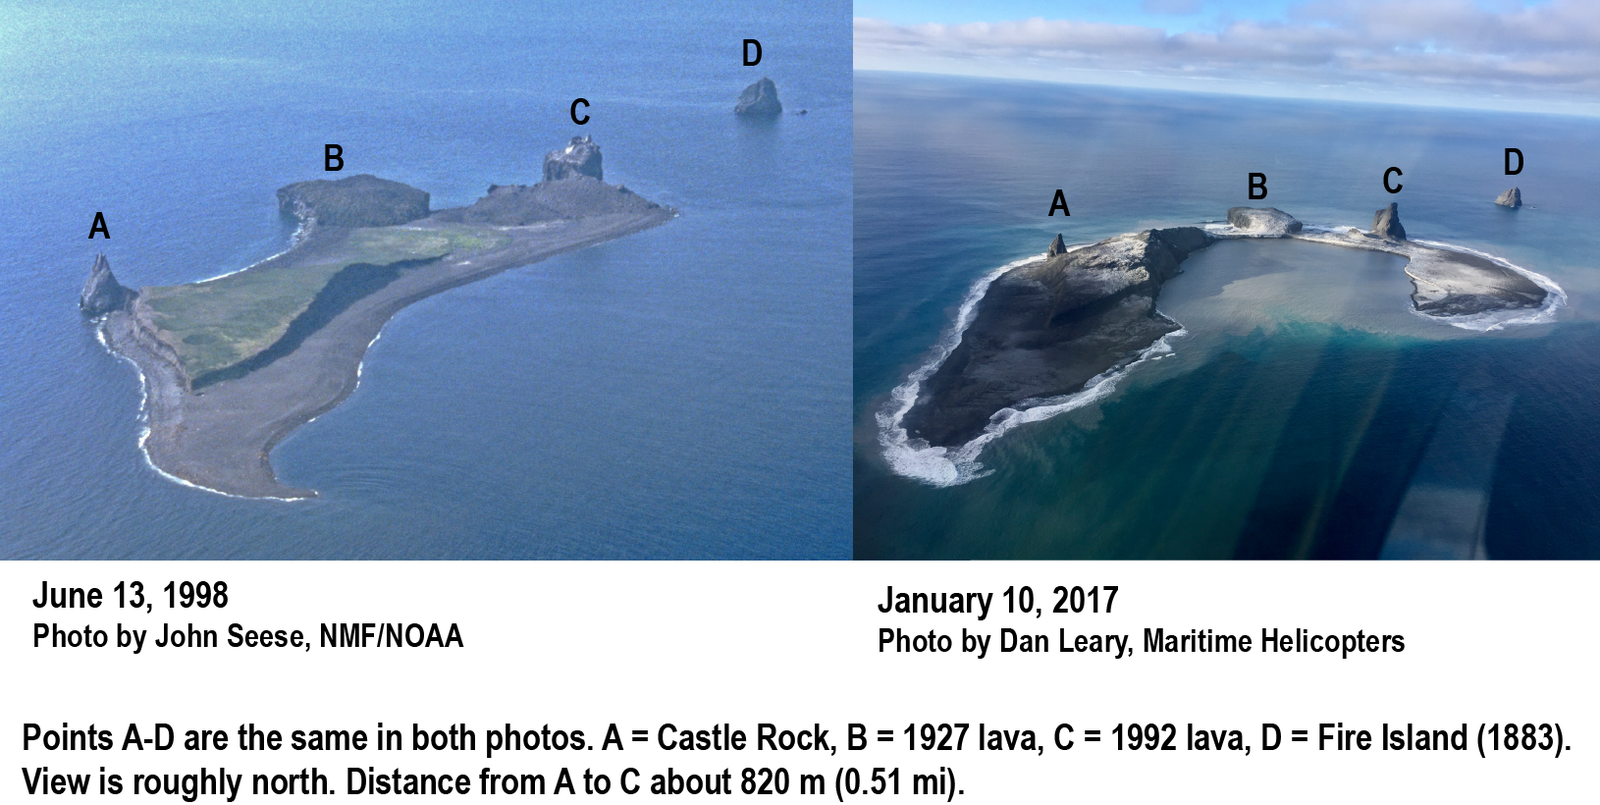 Comparaison of Bogoslof Island, 1998 to 2017 showing changes in the configuration of the island as a result of the ongoing 2016-17 eruption. IMAGE: photo 1998 courtesy of John Seese, National Marine Fisheries/NOAA. -  photo 2017 courtesy of Dan Leary, Maritime Helicopters./ Alaska Volcano Observatory / U.S. Geological Survey  A click to enlarge